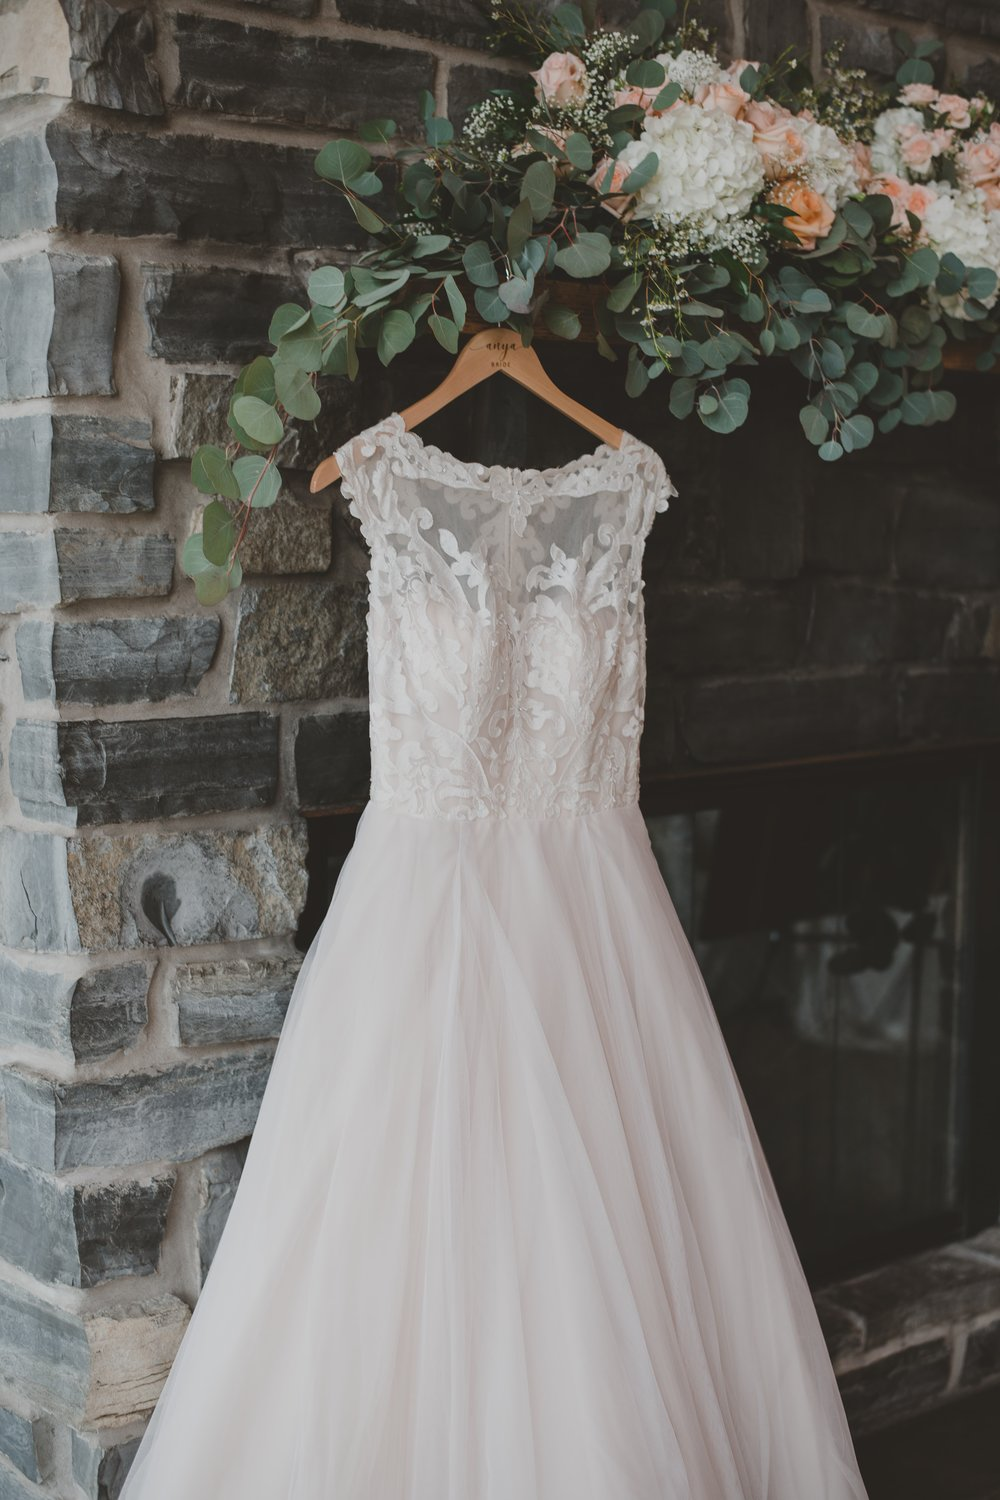 ivory-and-beau-savannah-bridal-shop-ivory-and-beau-bride-anya-carrie-by-maggie-sottero-savannah-bride-savannah-weddings-savannah-bridal-boutique-moe-b-photography-savannah-wedding-gowns-2.jpg